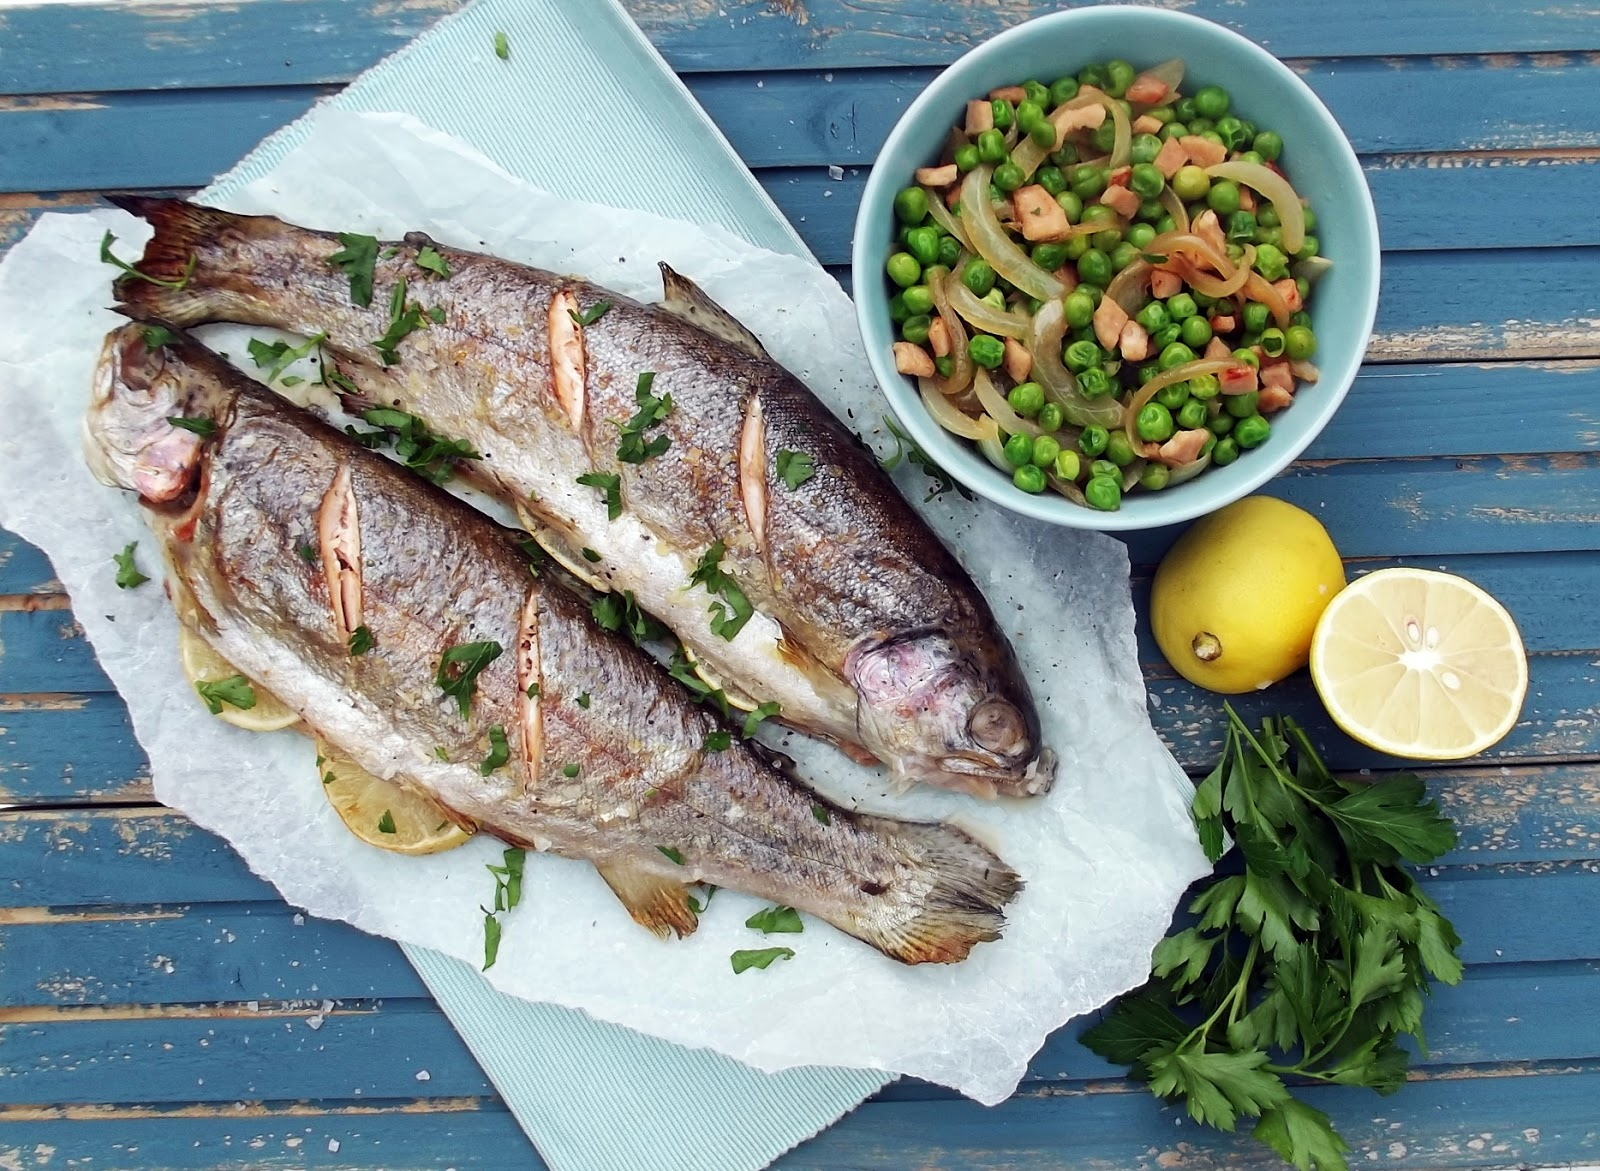 Paleo 12 weeks to change your life - two fish and a salad of peas and carrots